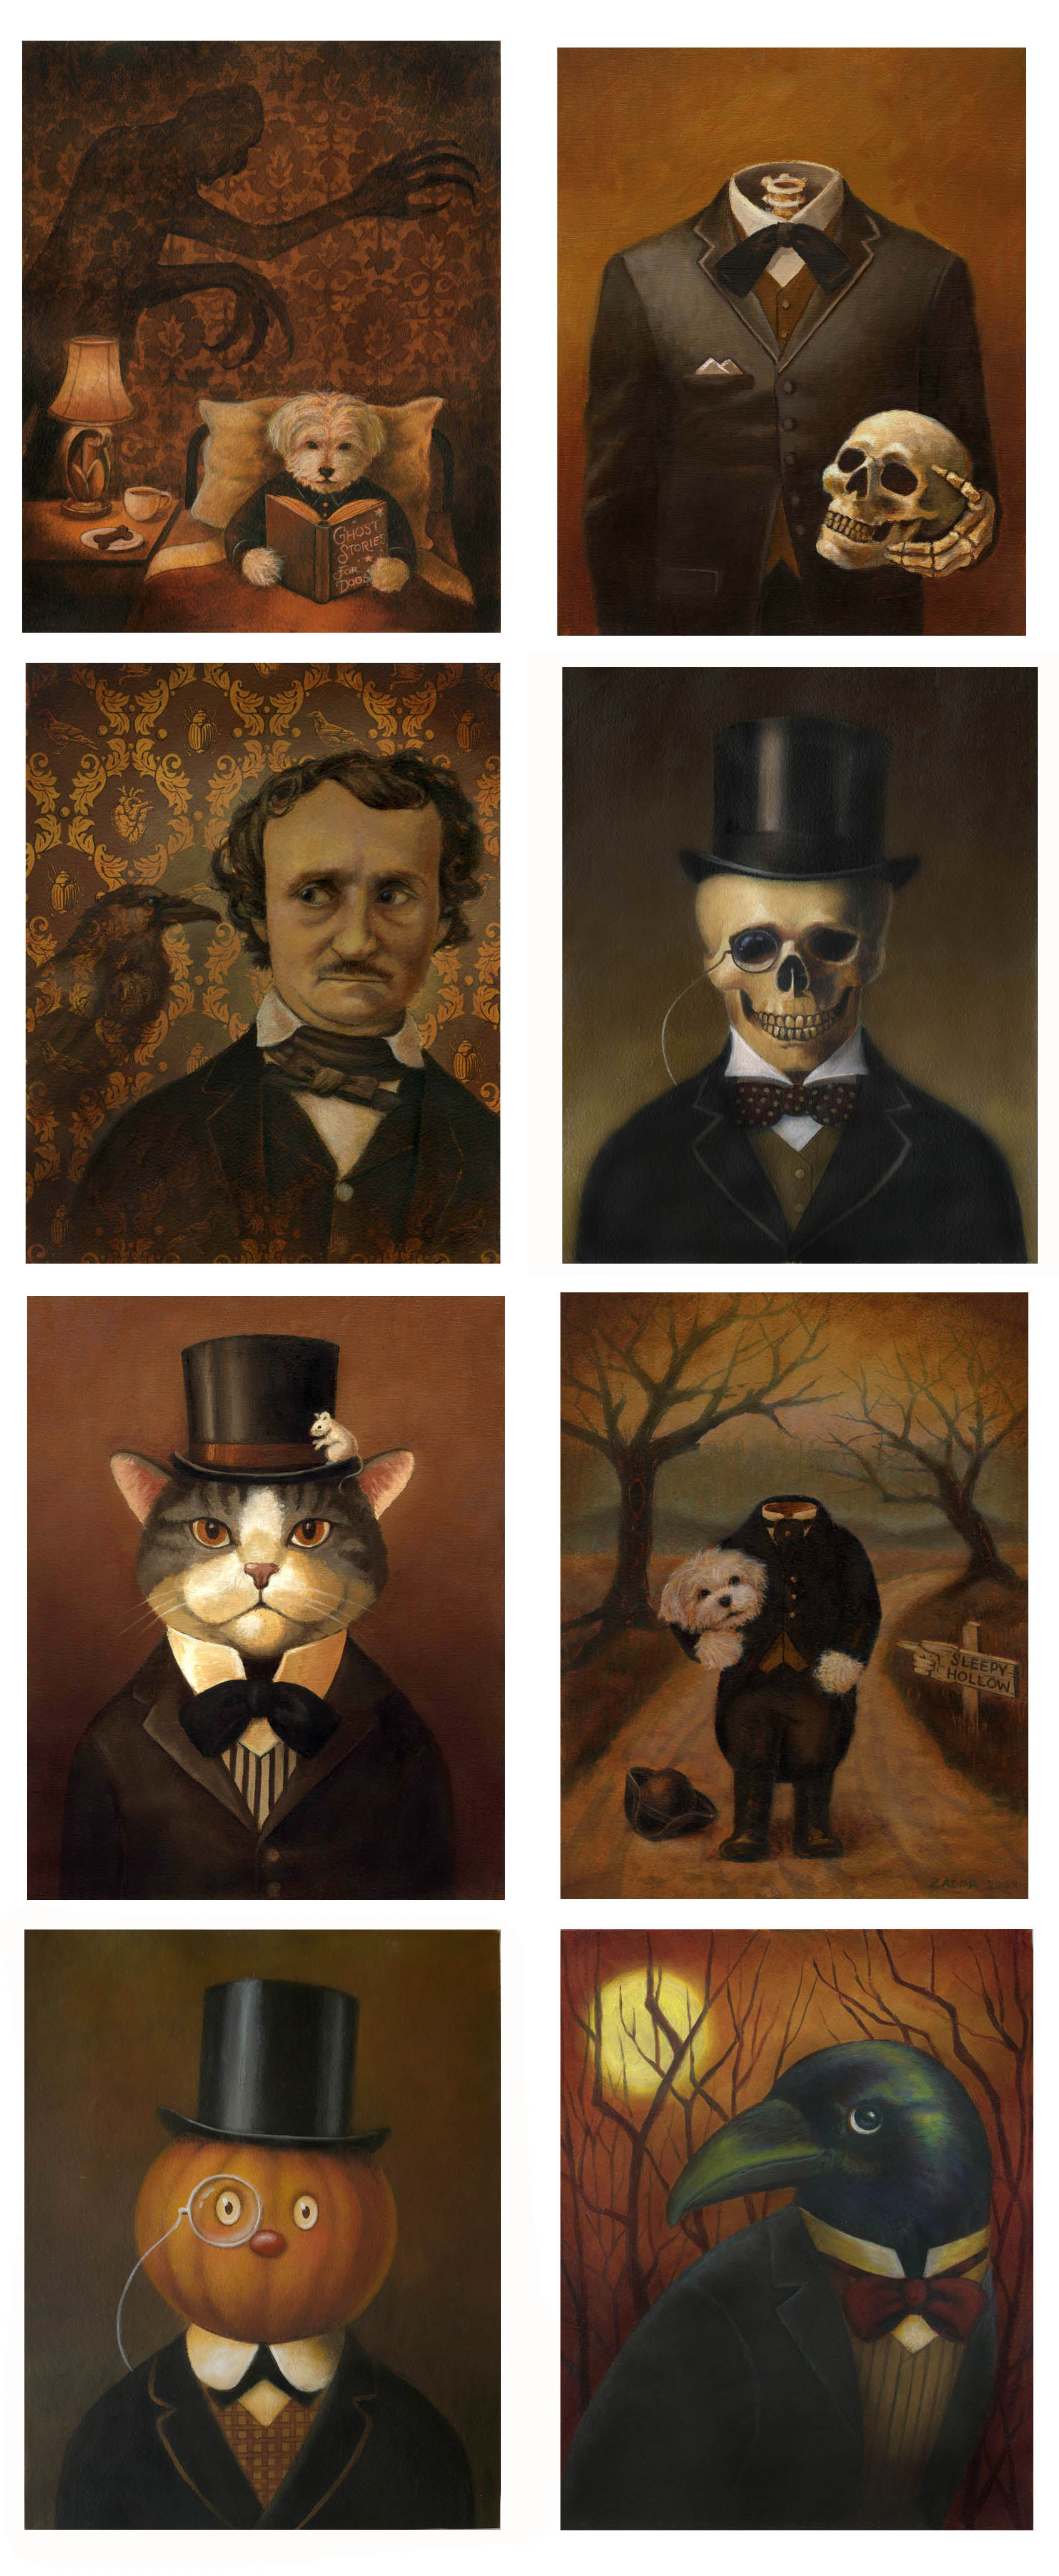 Headless Dogs, Gentlemen Skeletons and even Edgar Allen Poe makes an appearance!